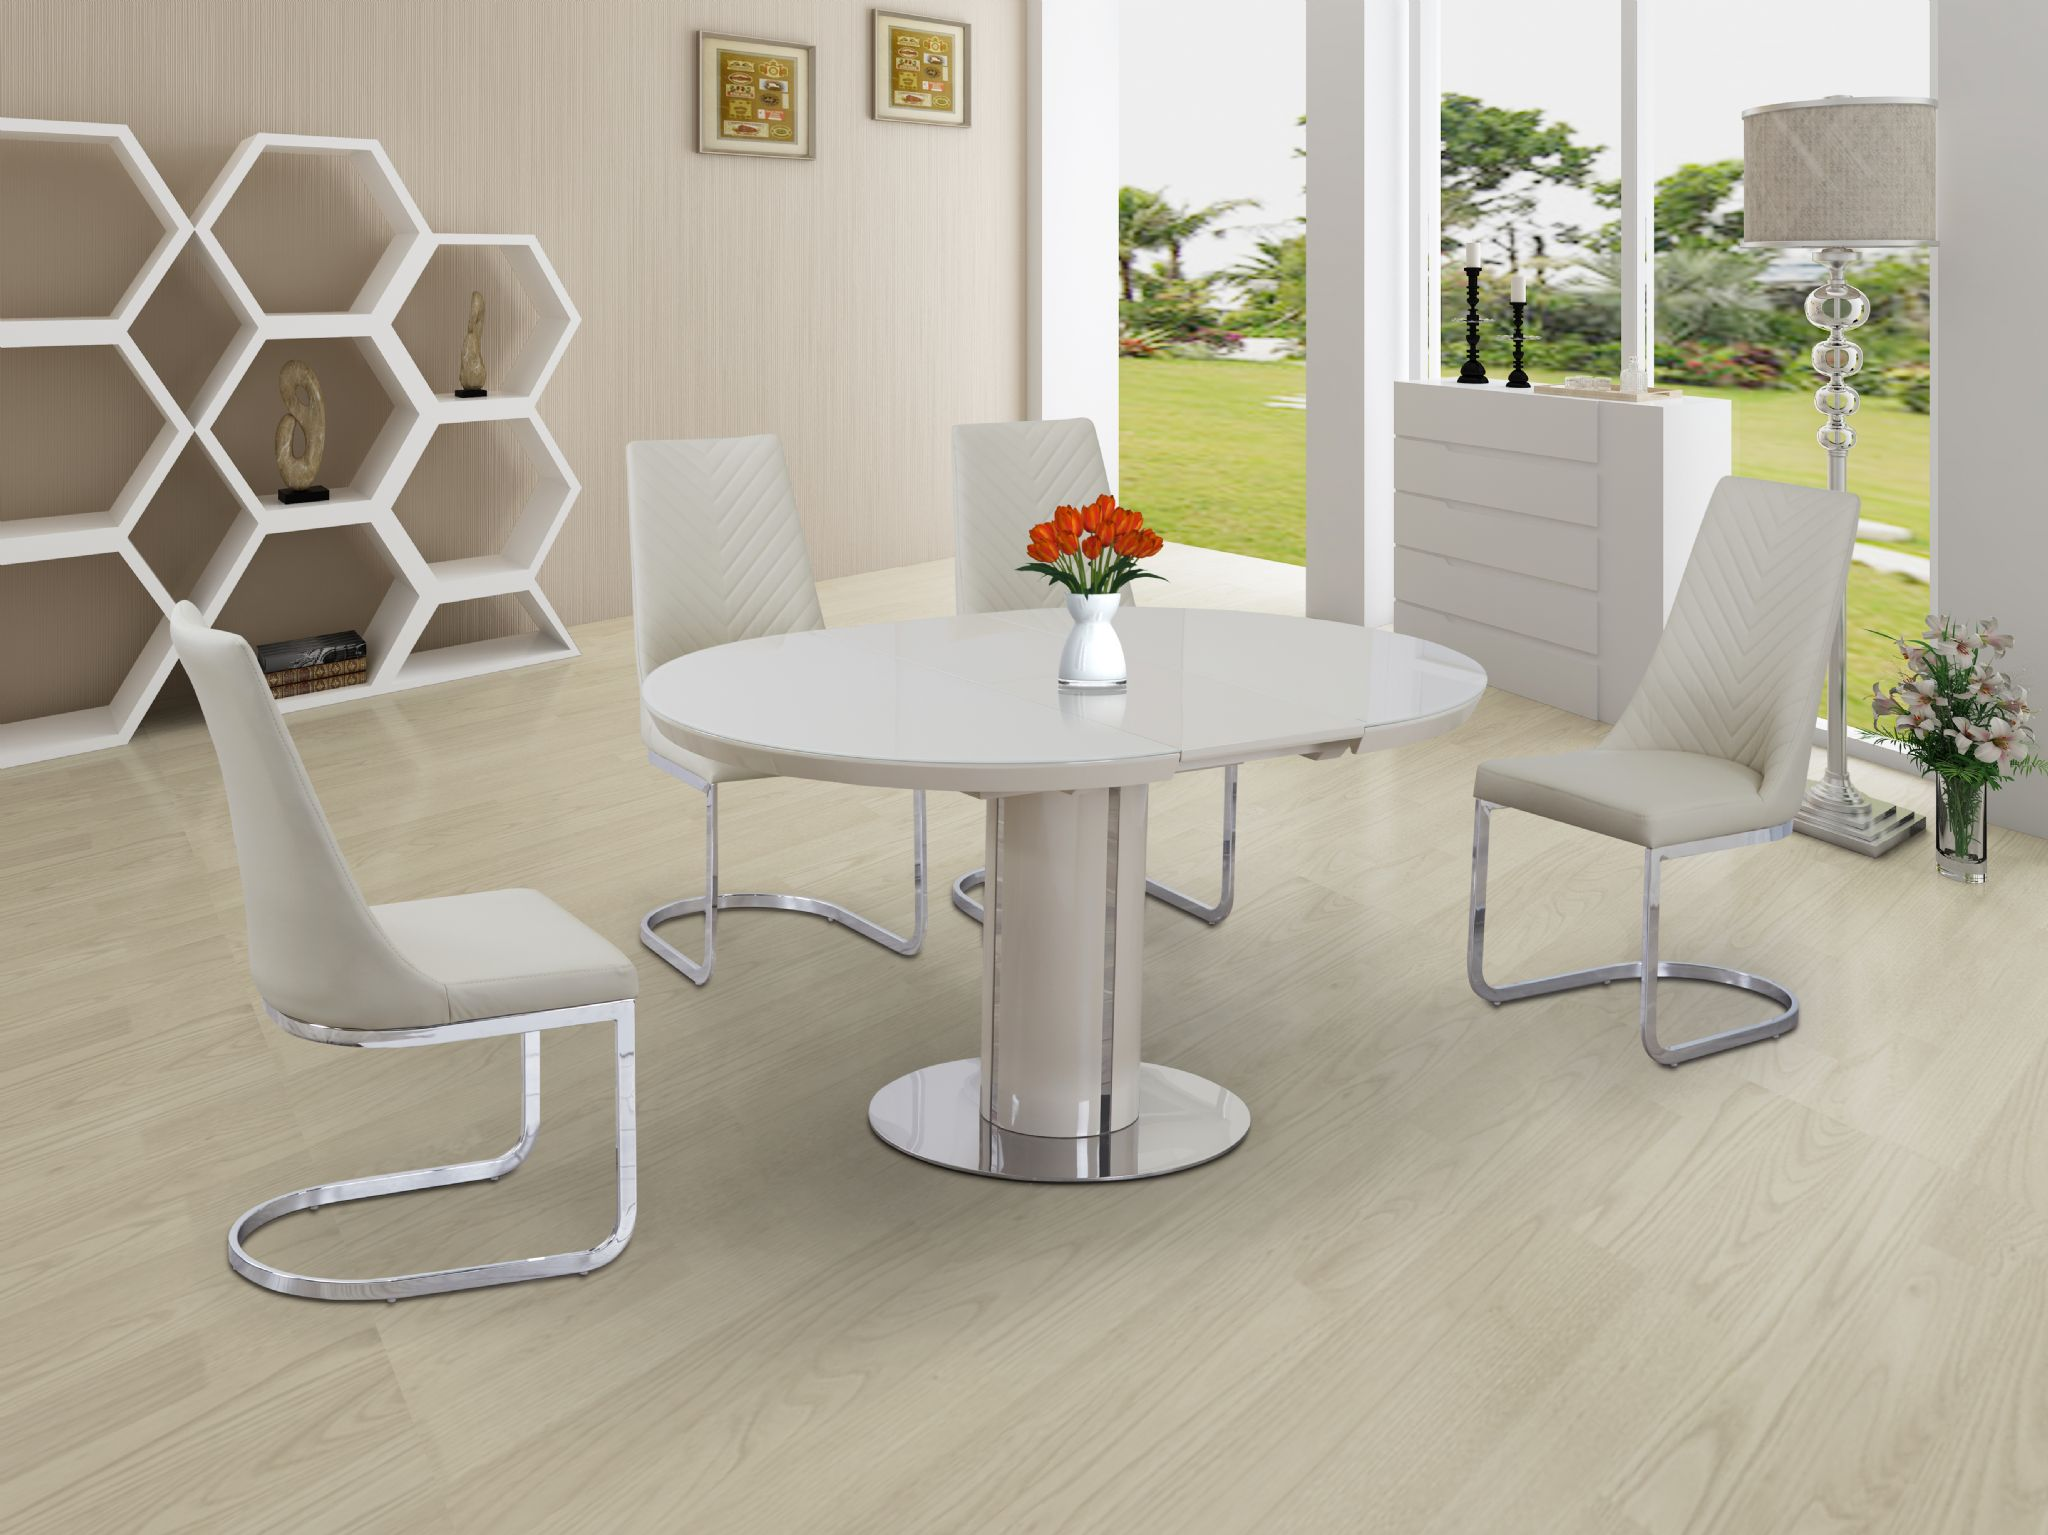 ECLIPSE Round Oval Gloss U0026 Glass Extending 110 To 145 Cm Dining Table    CREAM